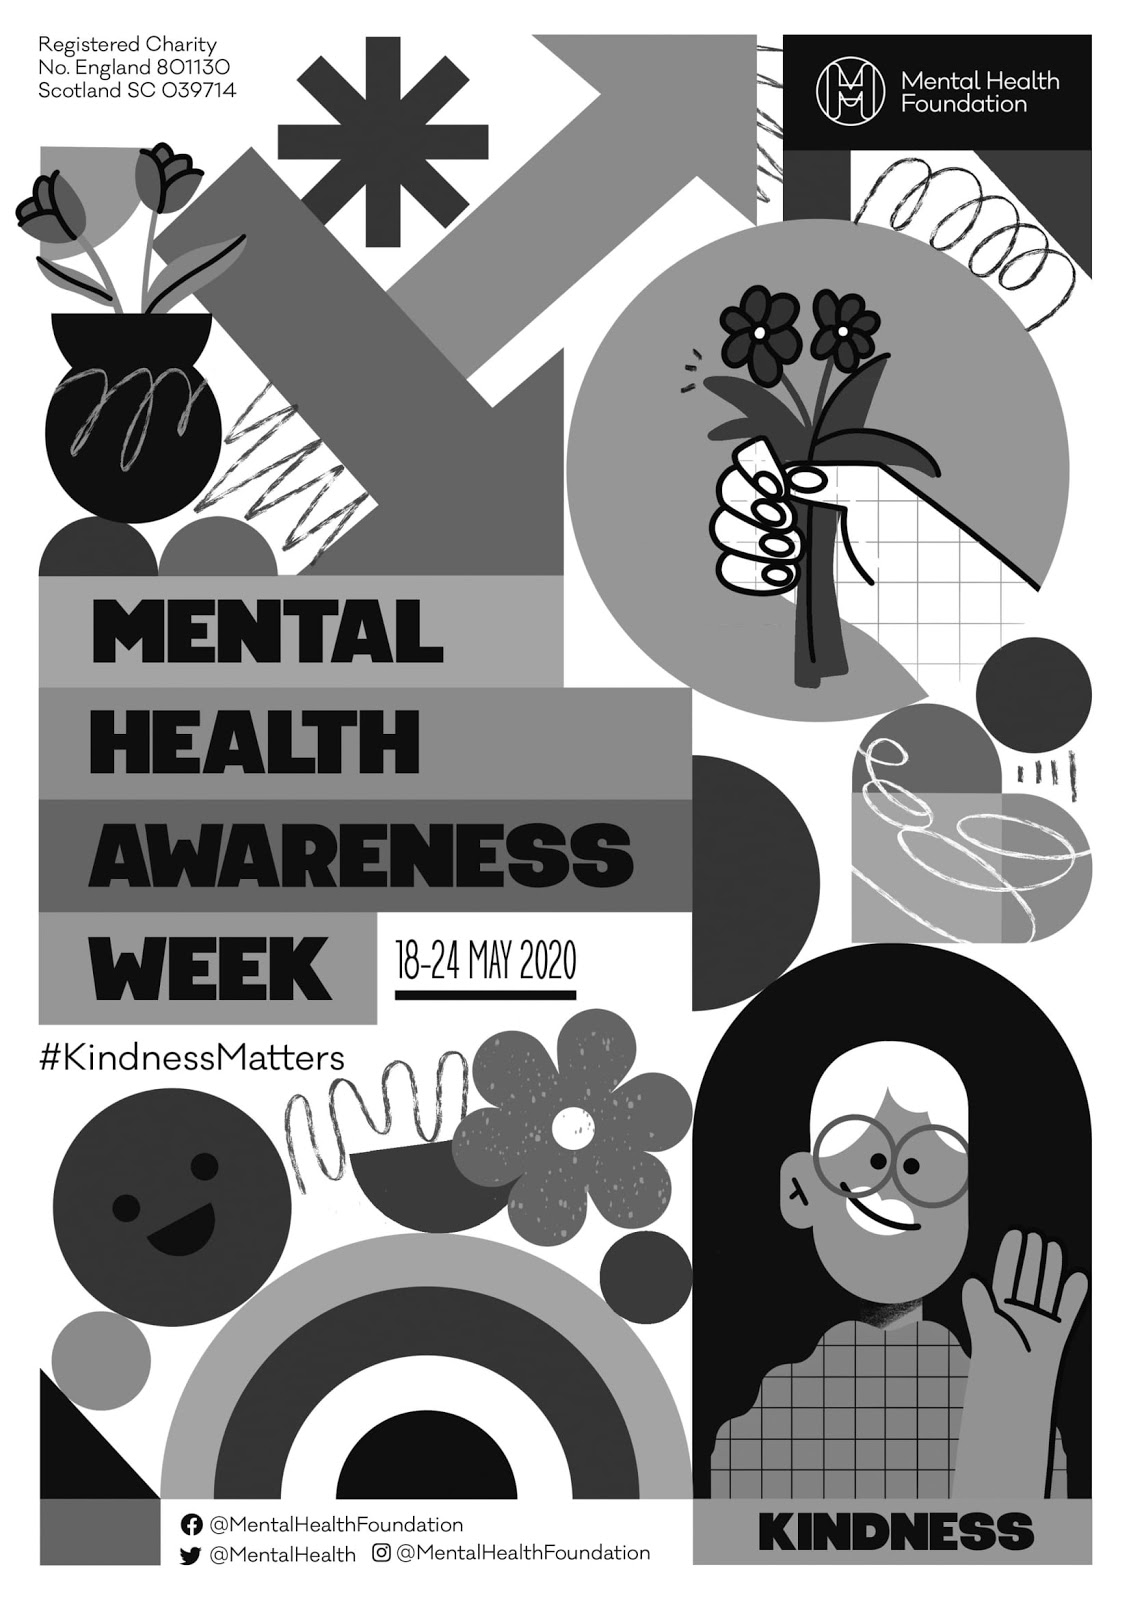 The official black and white poster for mental health awareness week 2020